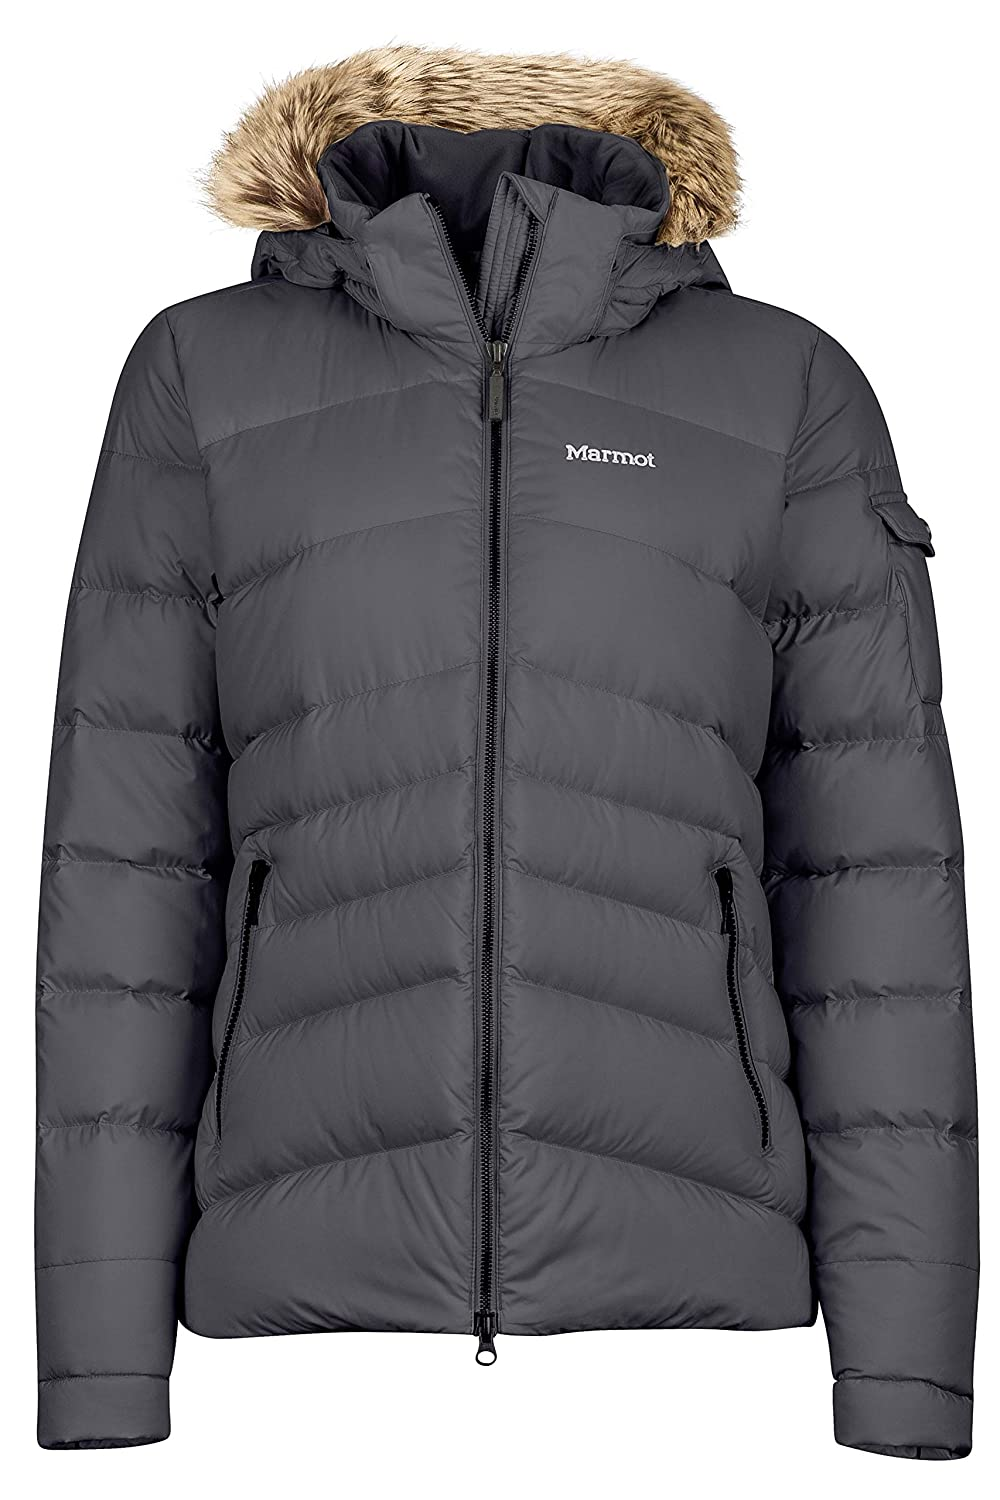 bb3ddb8f3 Marmot Ithaca Women's Down Puffer Jacket, Fill Power 700